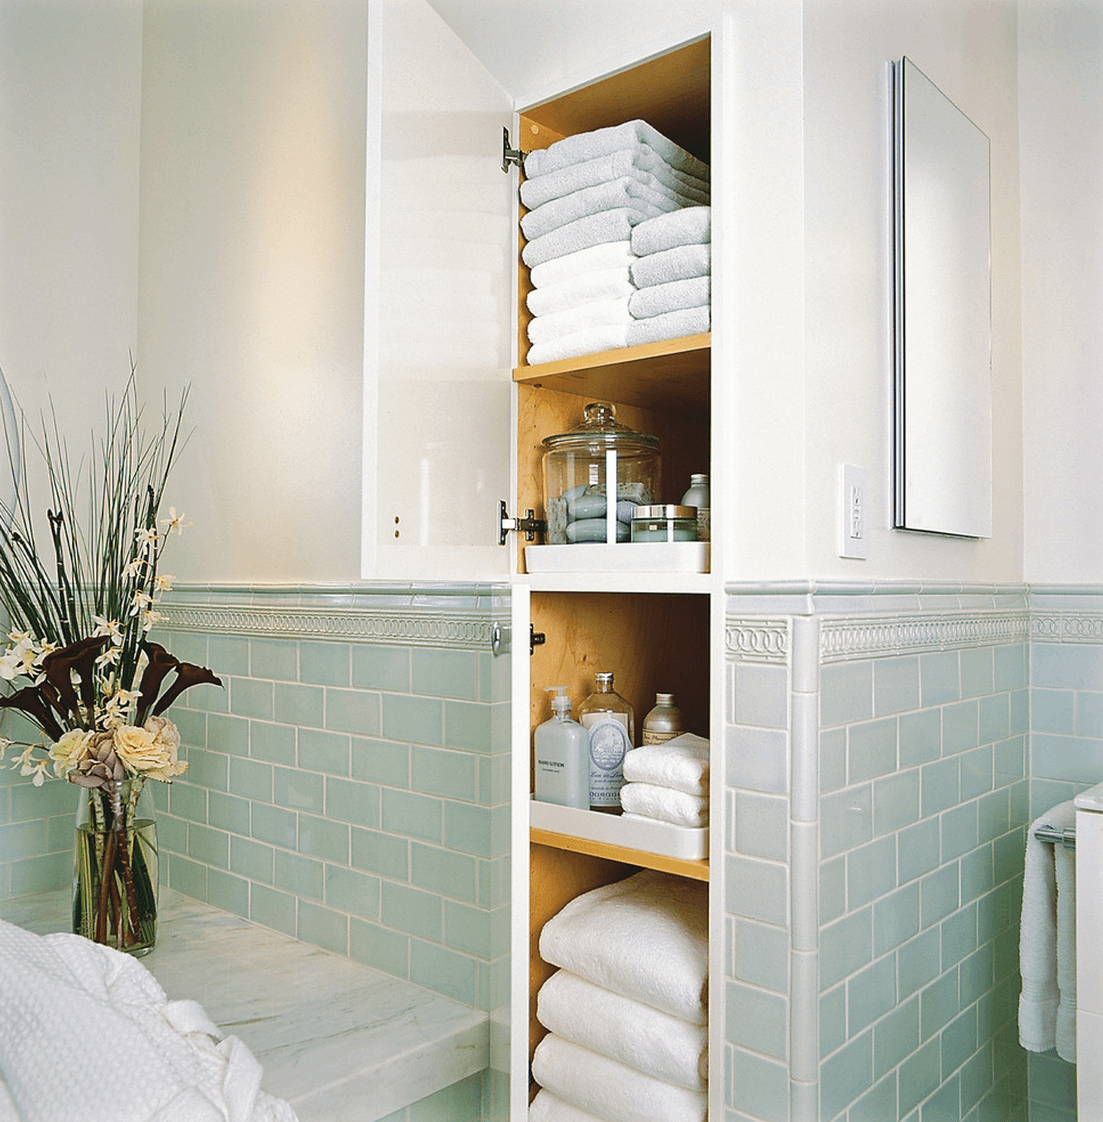 44 Best Small Bathroom Storage Ideas and Tips for 2018 Small Bathroom Organization Ideas on bathroom decorating ideas, small bathroom budget ideas, small contemporary bathroom ideas, small bathroom ceiling ideas, small bathroom under sink storage, small bathroom kitchen, bathroom shelves over toilet ideas, small bathroom space saving ideas, small bathroom lighting, small black and white bathroom ideas, small bathroom arrangement ideas, small bathroom theme ideas, small bathroom creative ideas, small bathroom accent wall ideas, small fabric ideas, small bathroom curtain ideas, small bathroom remodeling ideas, small bathroom colors, small bathroom home decor, small bathroom art ideas,